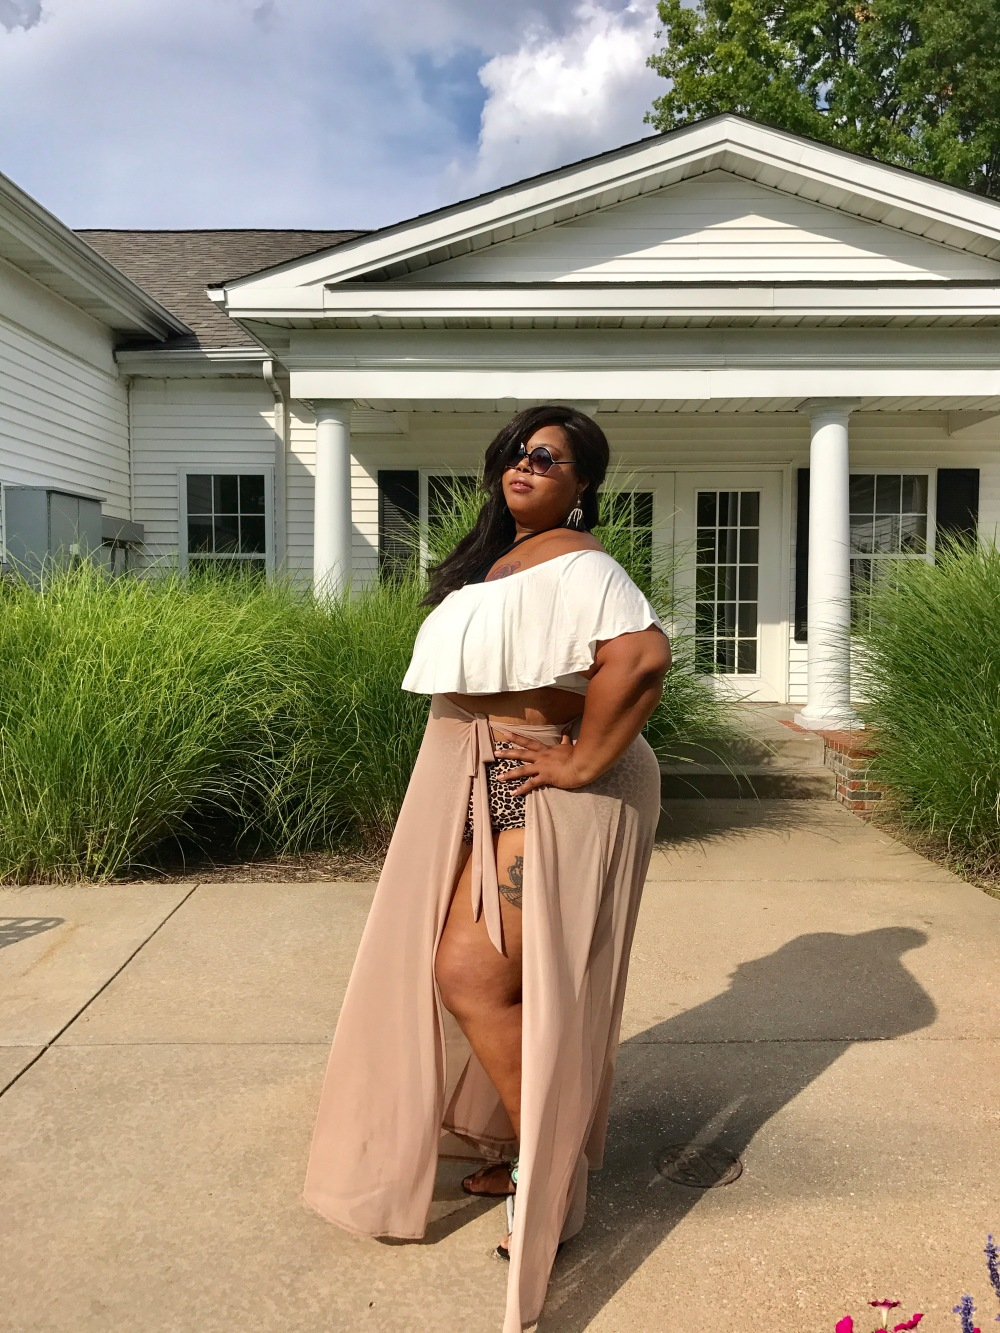 Plus Size resort wear from Honey's Child Boutique is perfect for a plus size pool party or a simple summer night out at the pool. Esther WIlliams swim bottoms, nude mesh cover up and cut out top and ruffle cover up make the perfect high-end look.